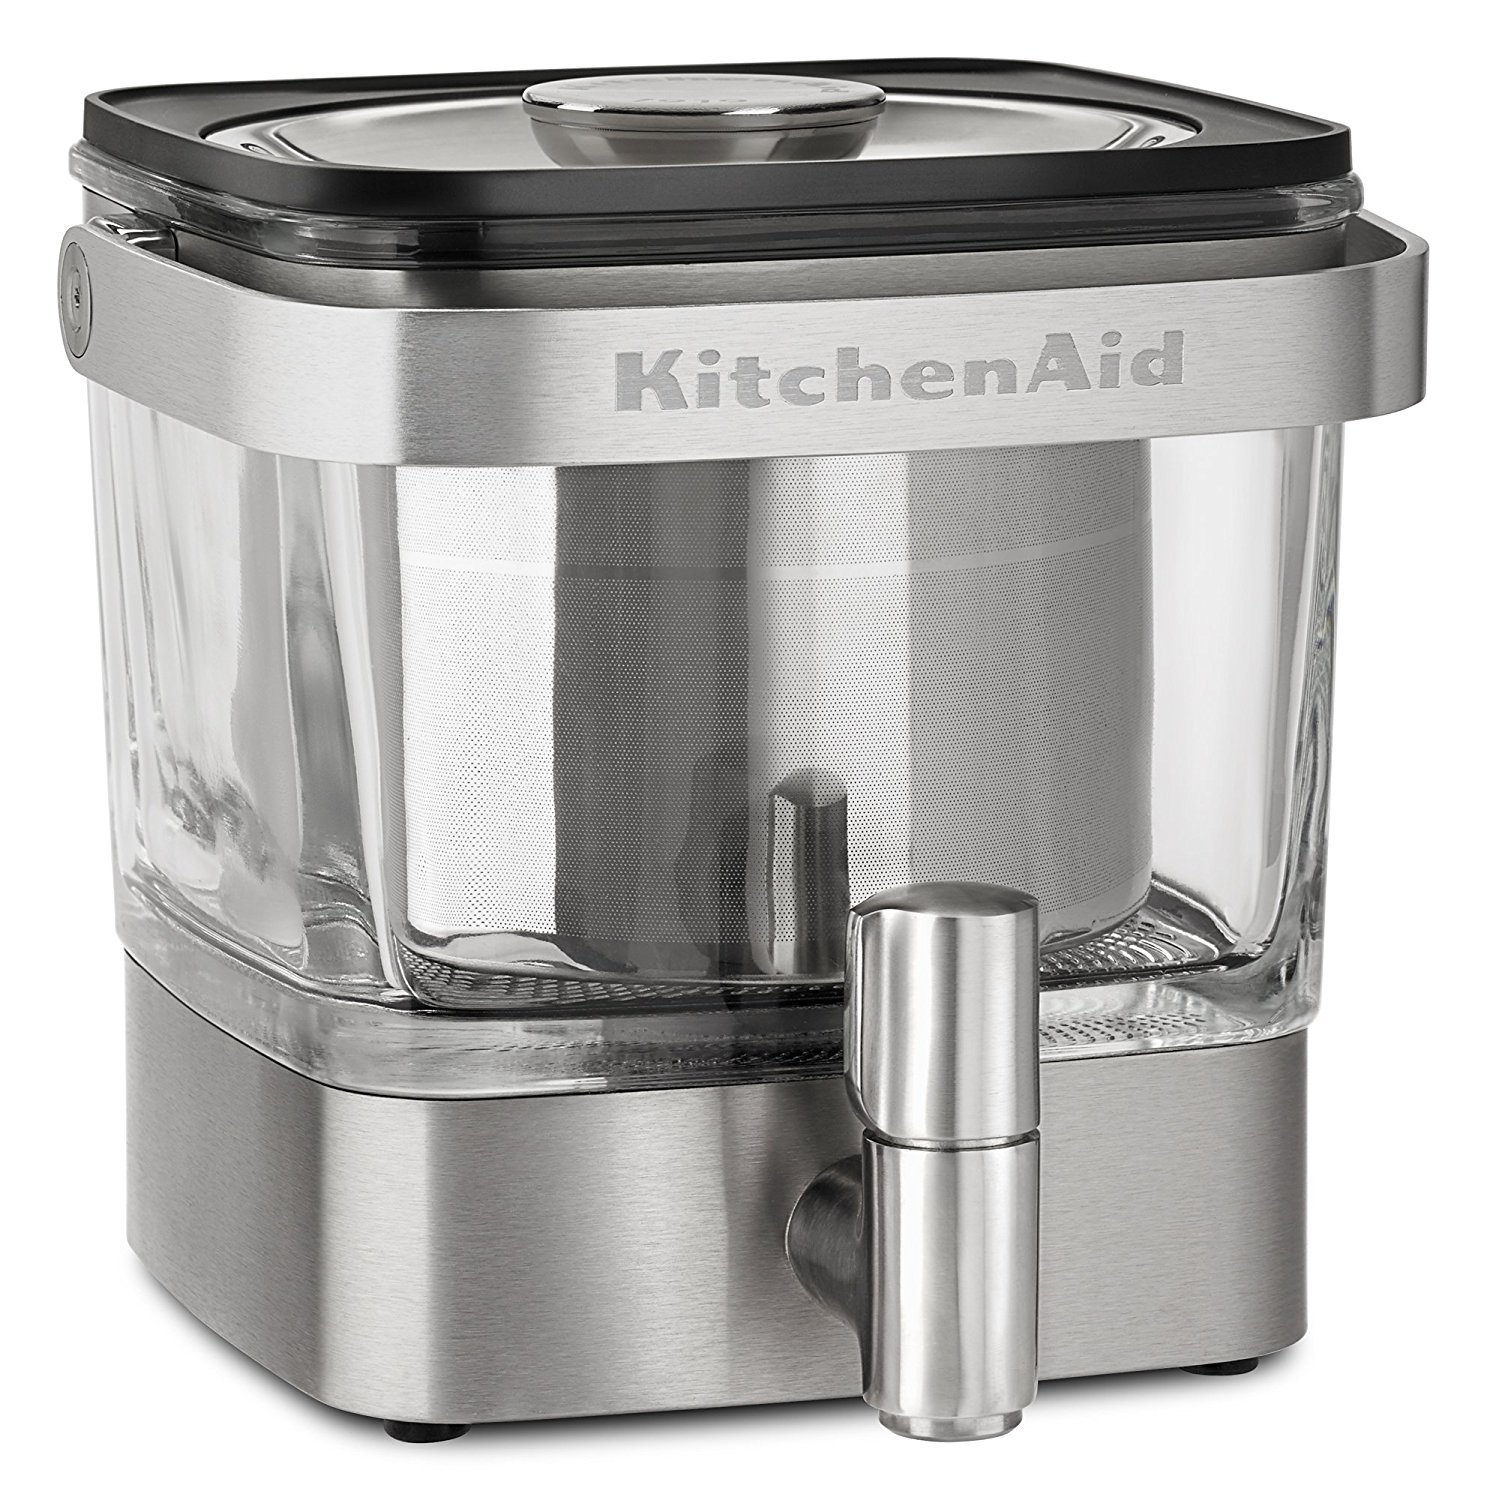 ​KitchenAid KCM4212SX Cold Brew Coffee Maker